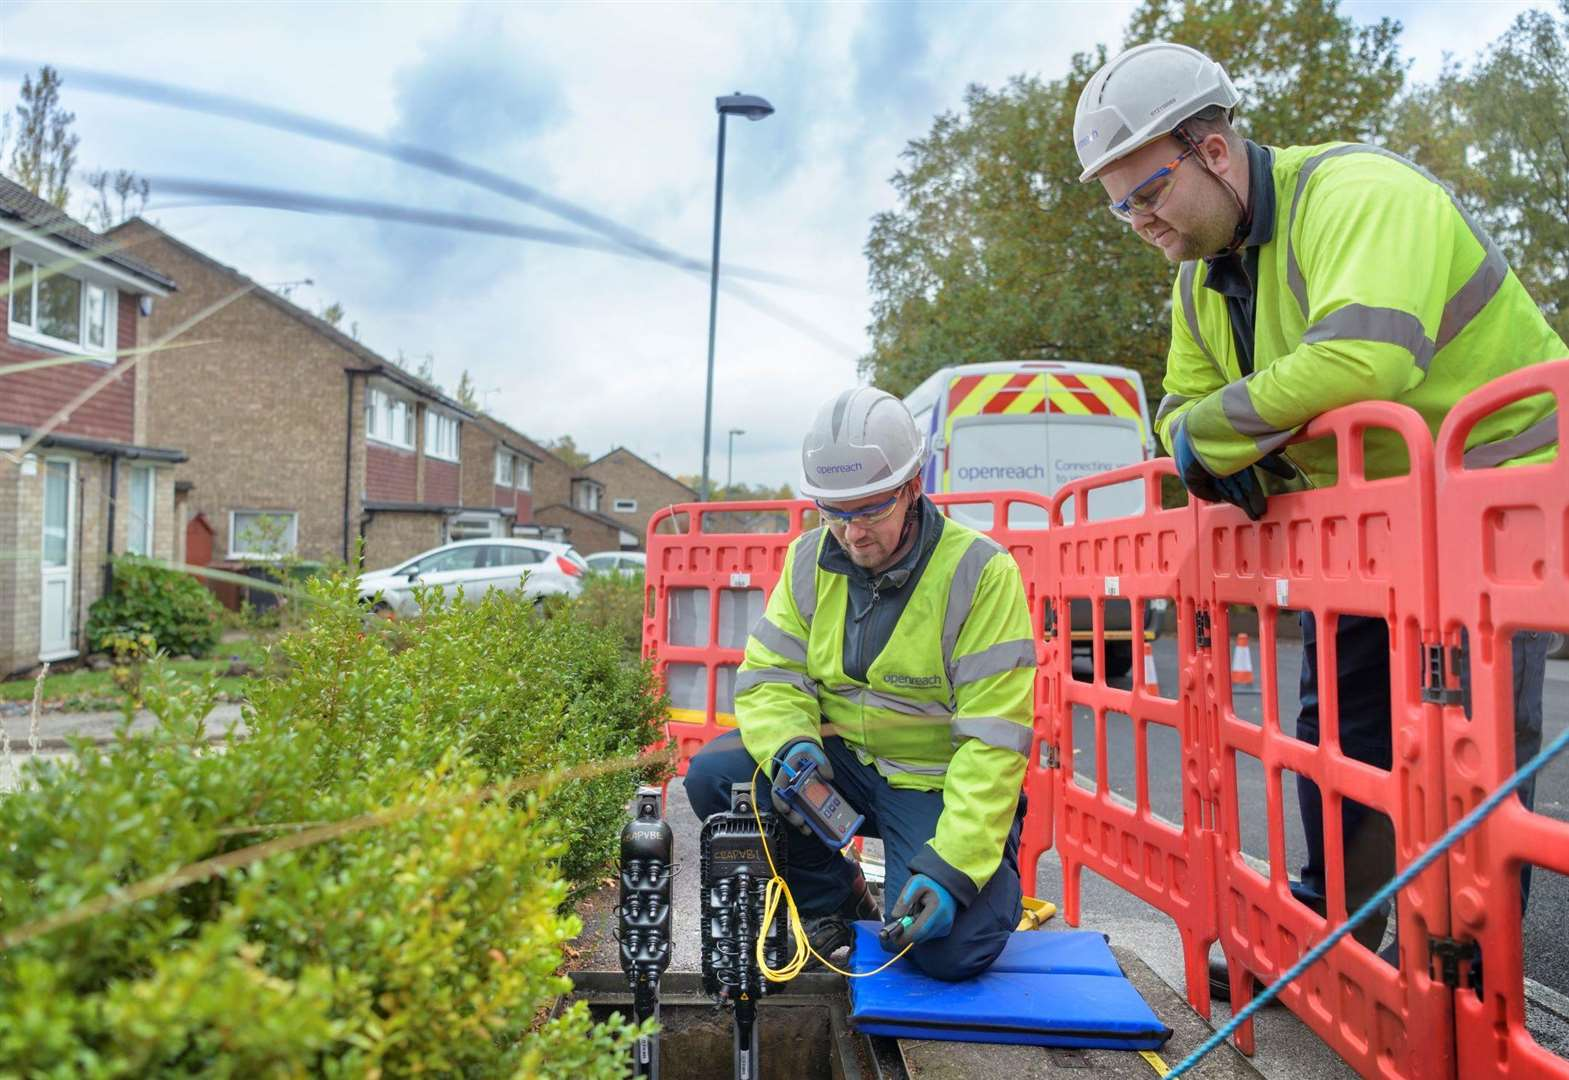 Openreach to hire 75 trainees in Kent